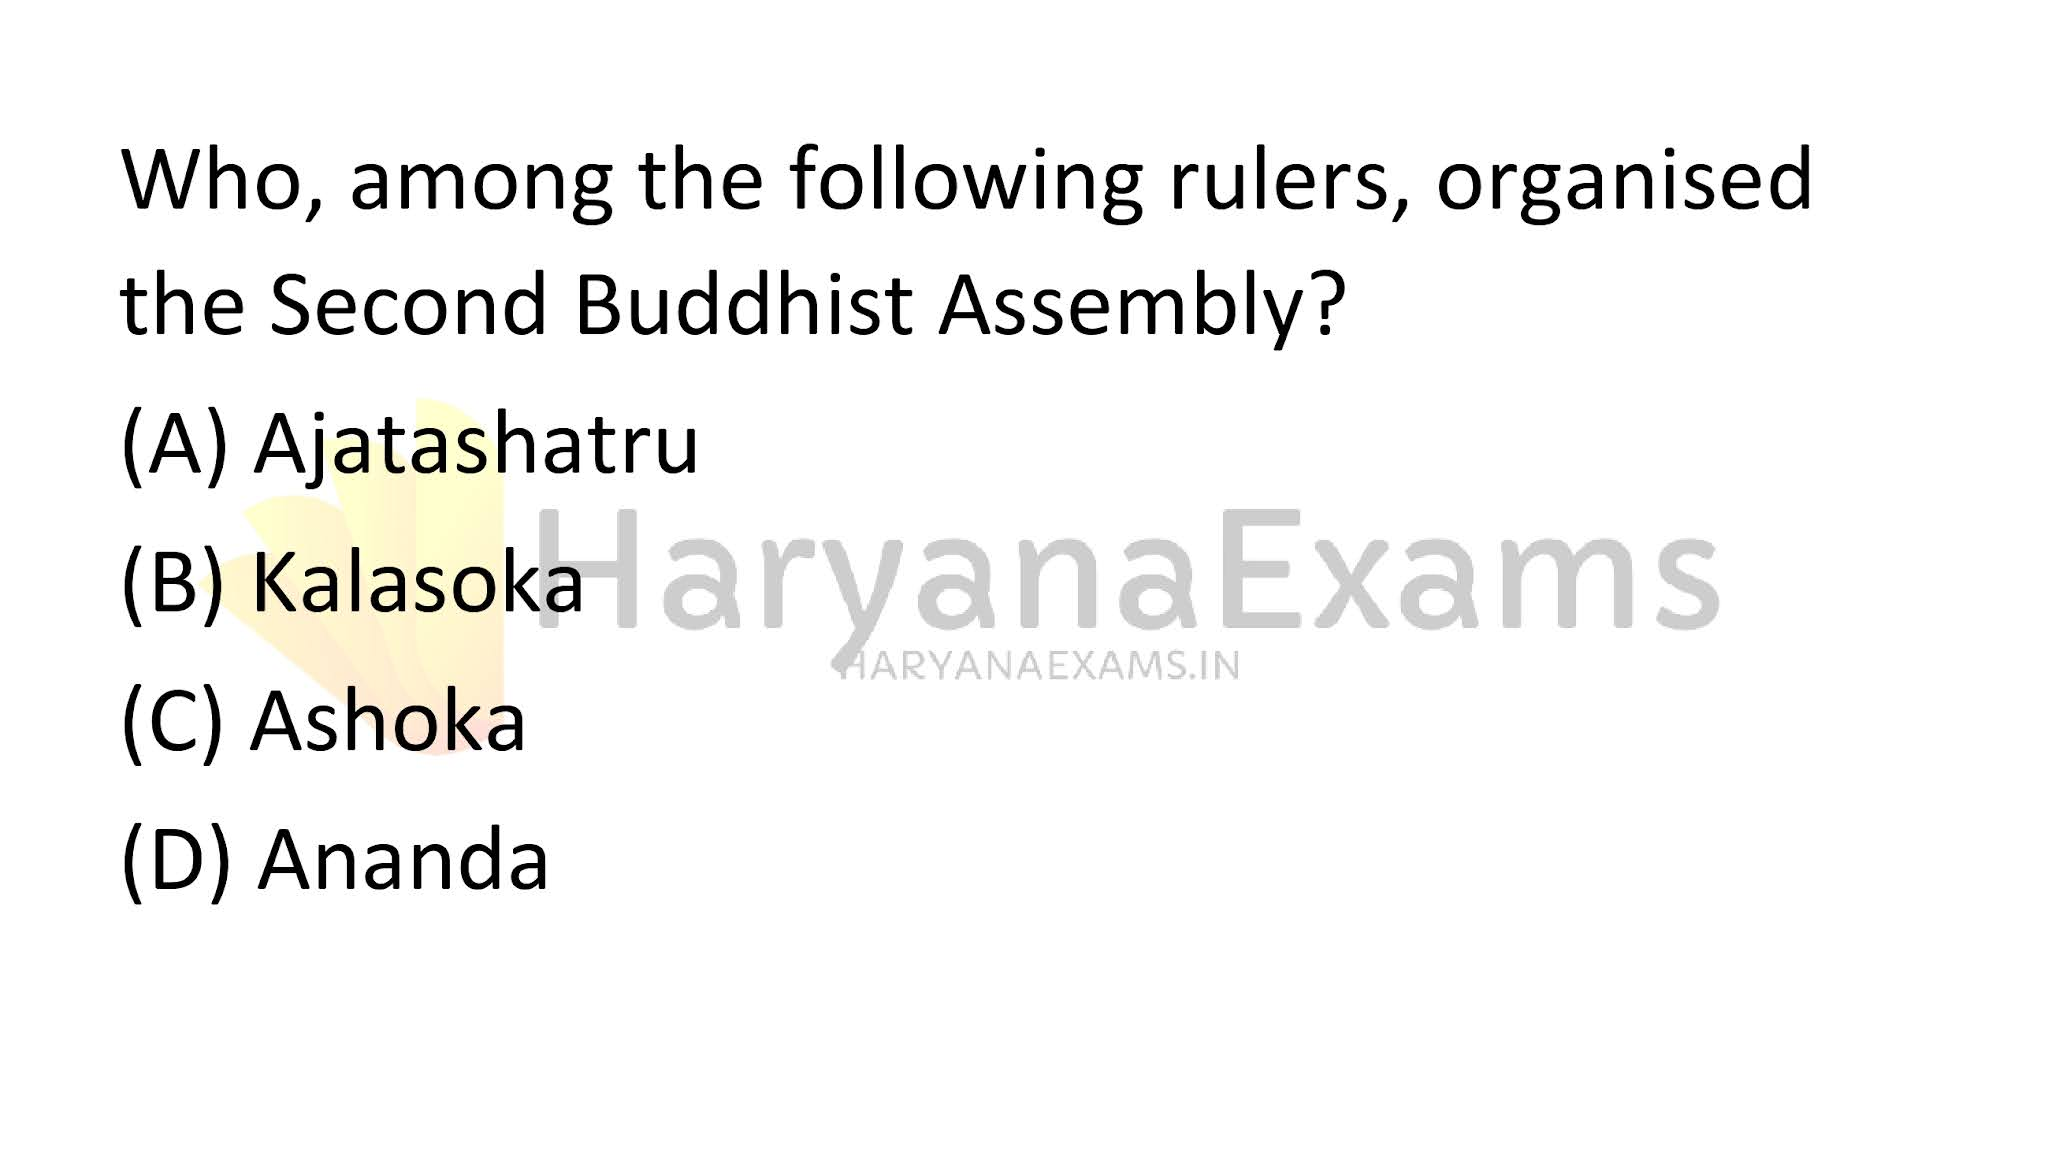 Who, among the following rulers, organised the Second Buddhist Assembly?